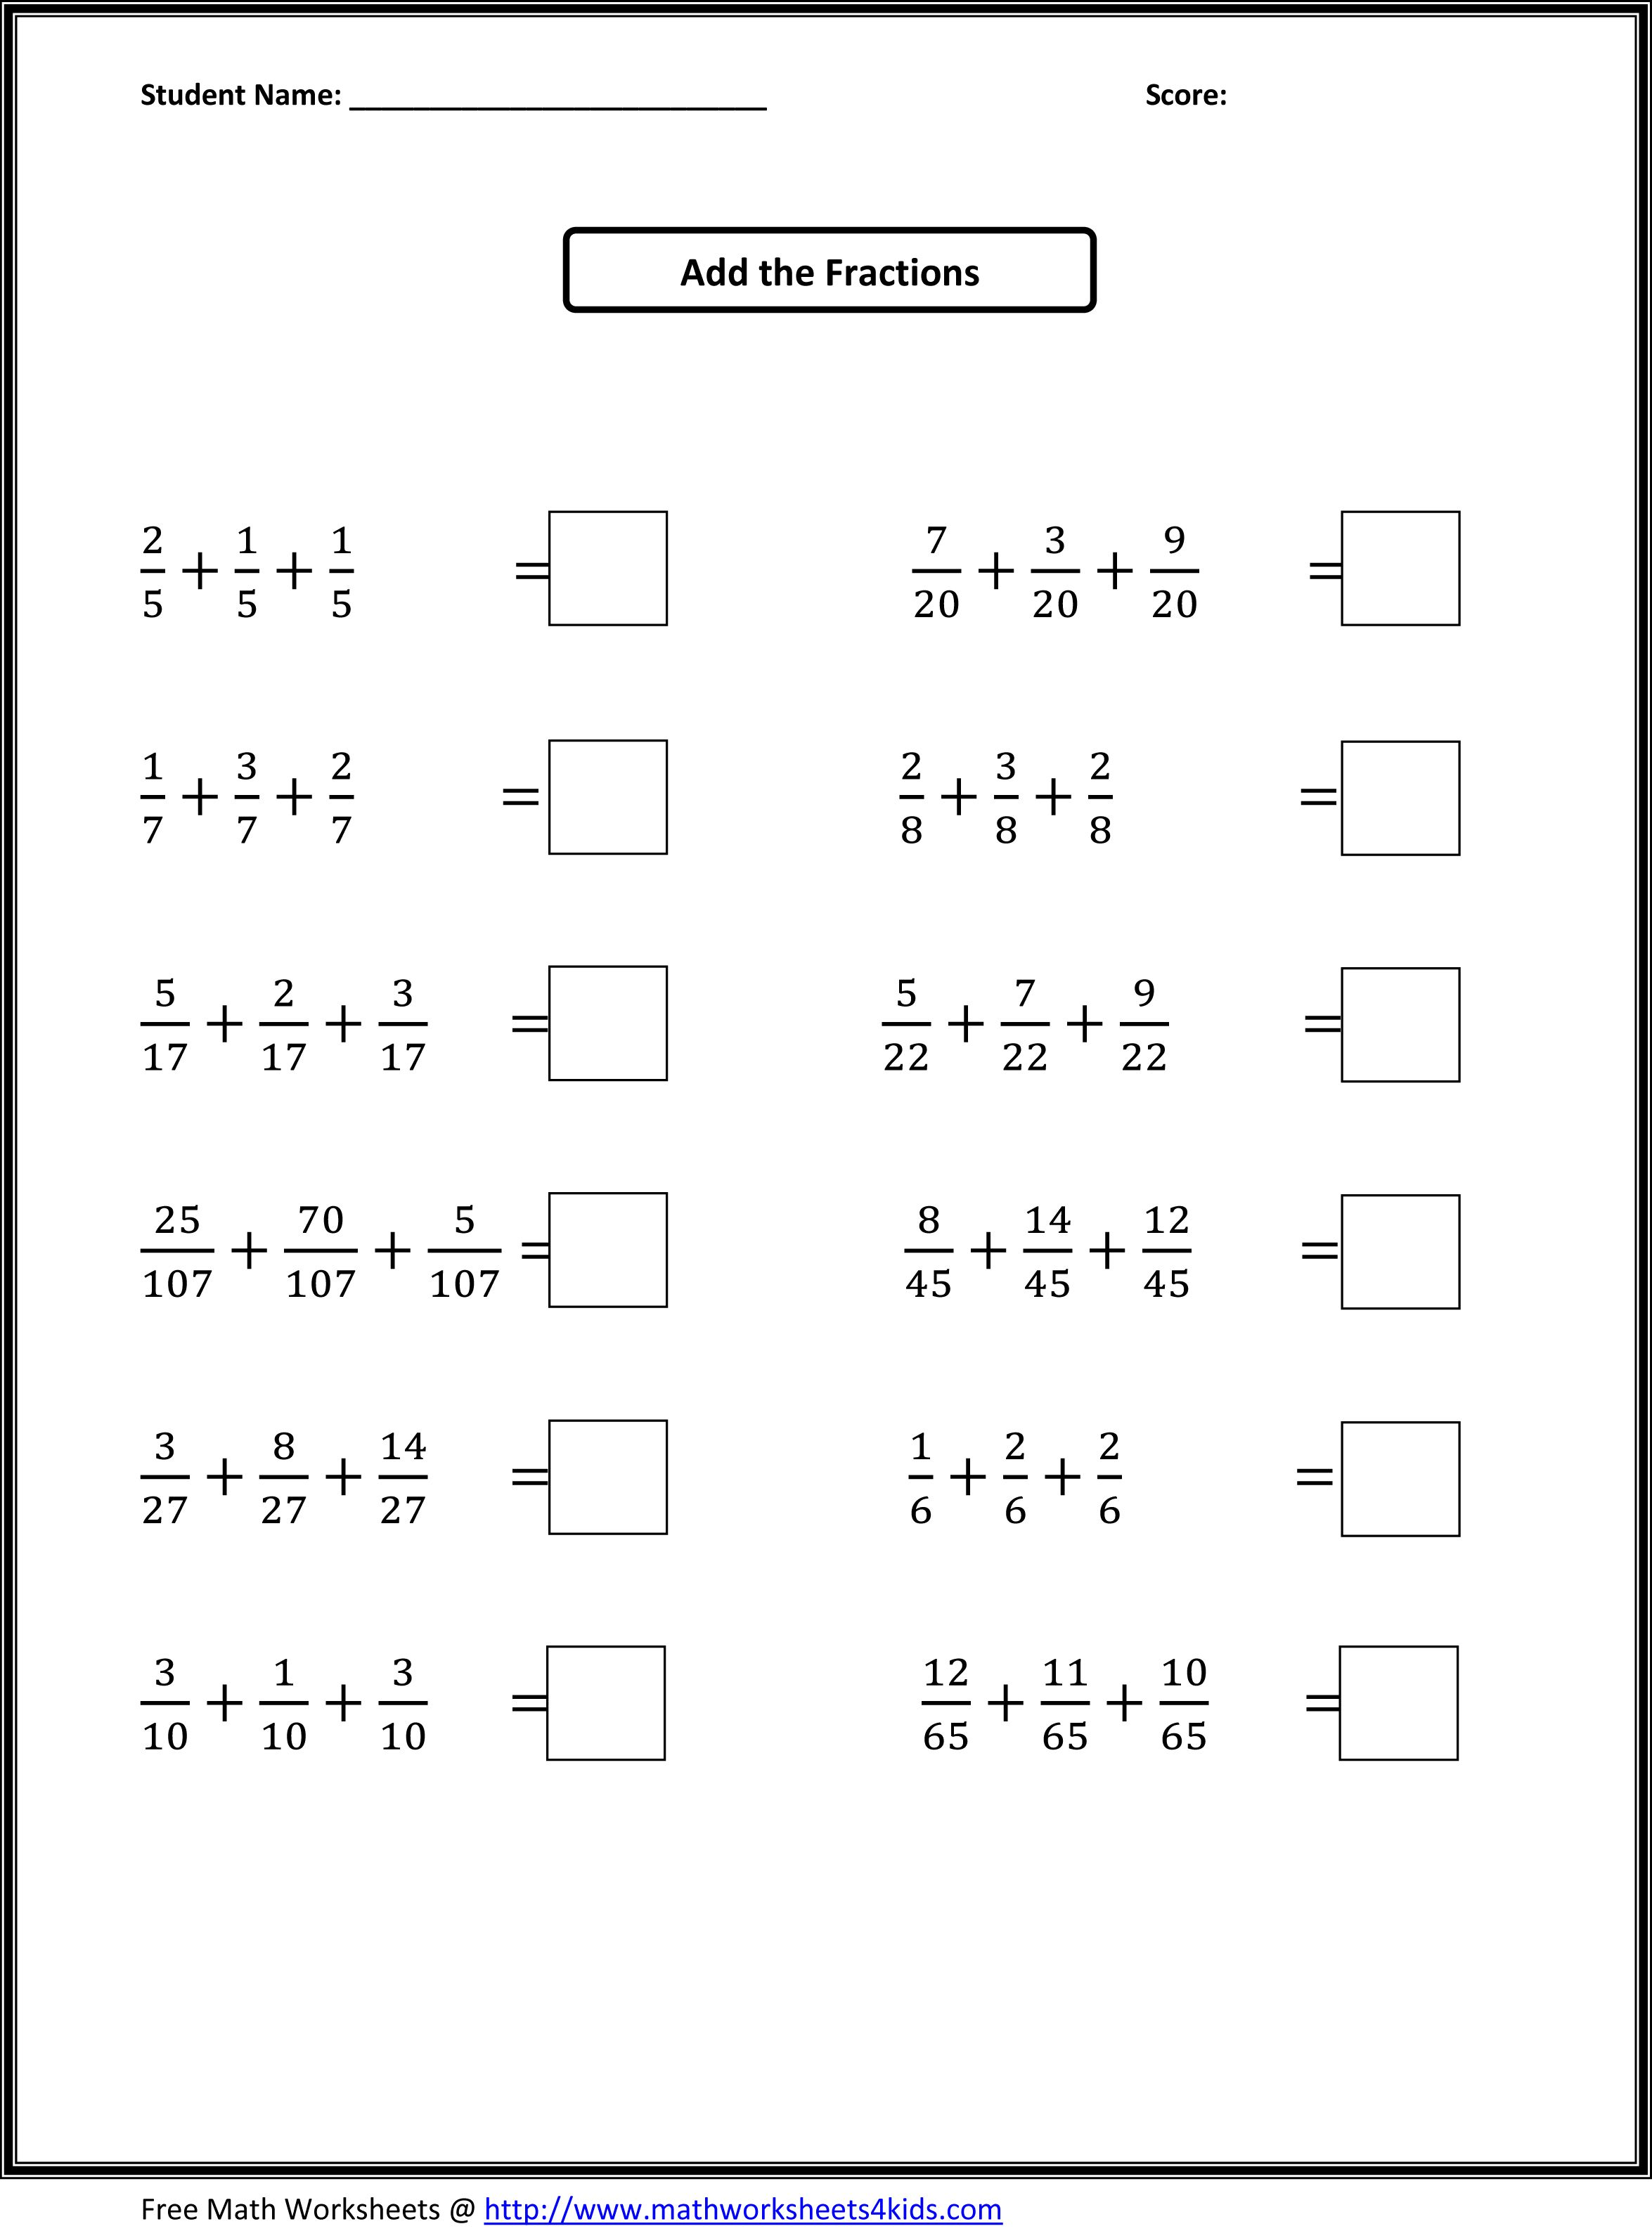 Worksheets 6th Grade Fraction Worksheets printable worksheets by grade level and skill teaching ideas high quality equivalent fractions for photos